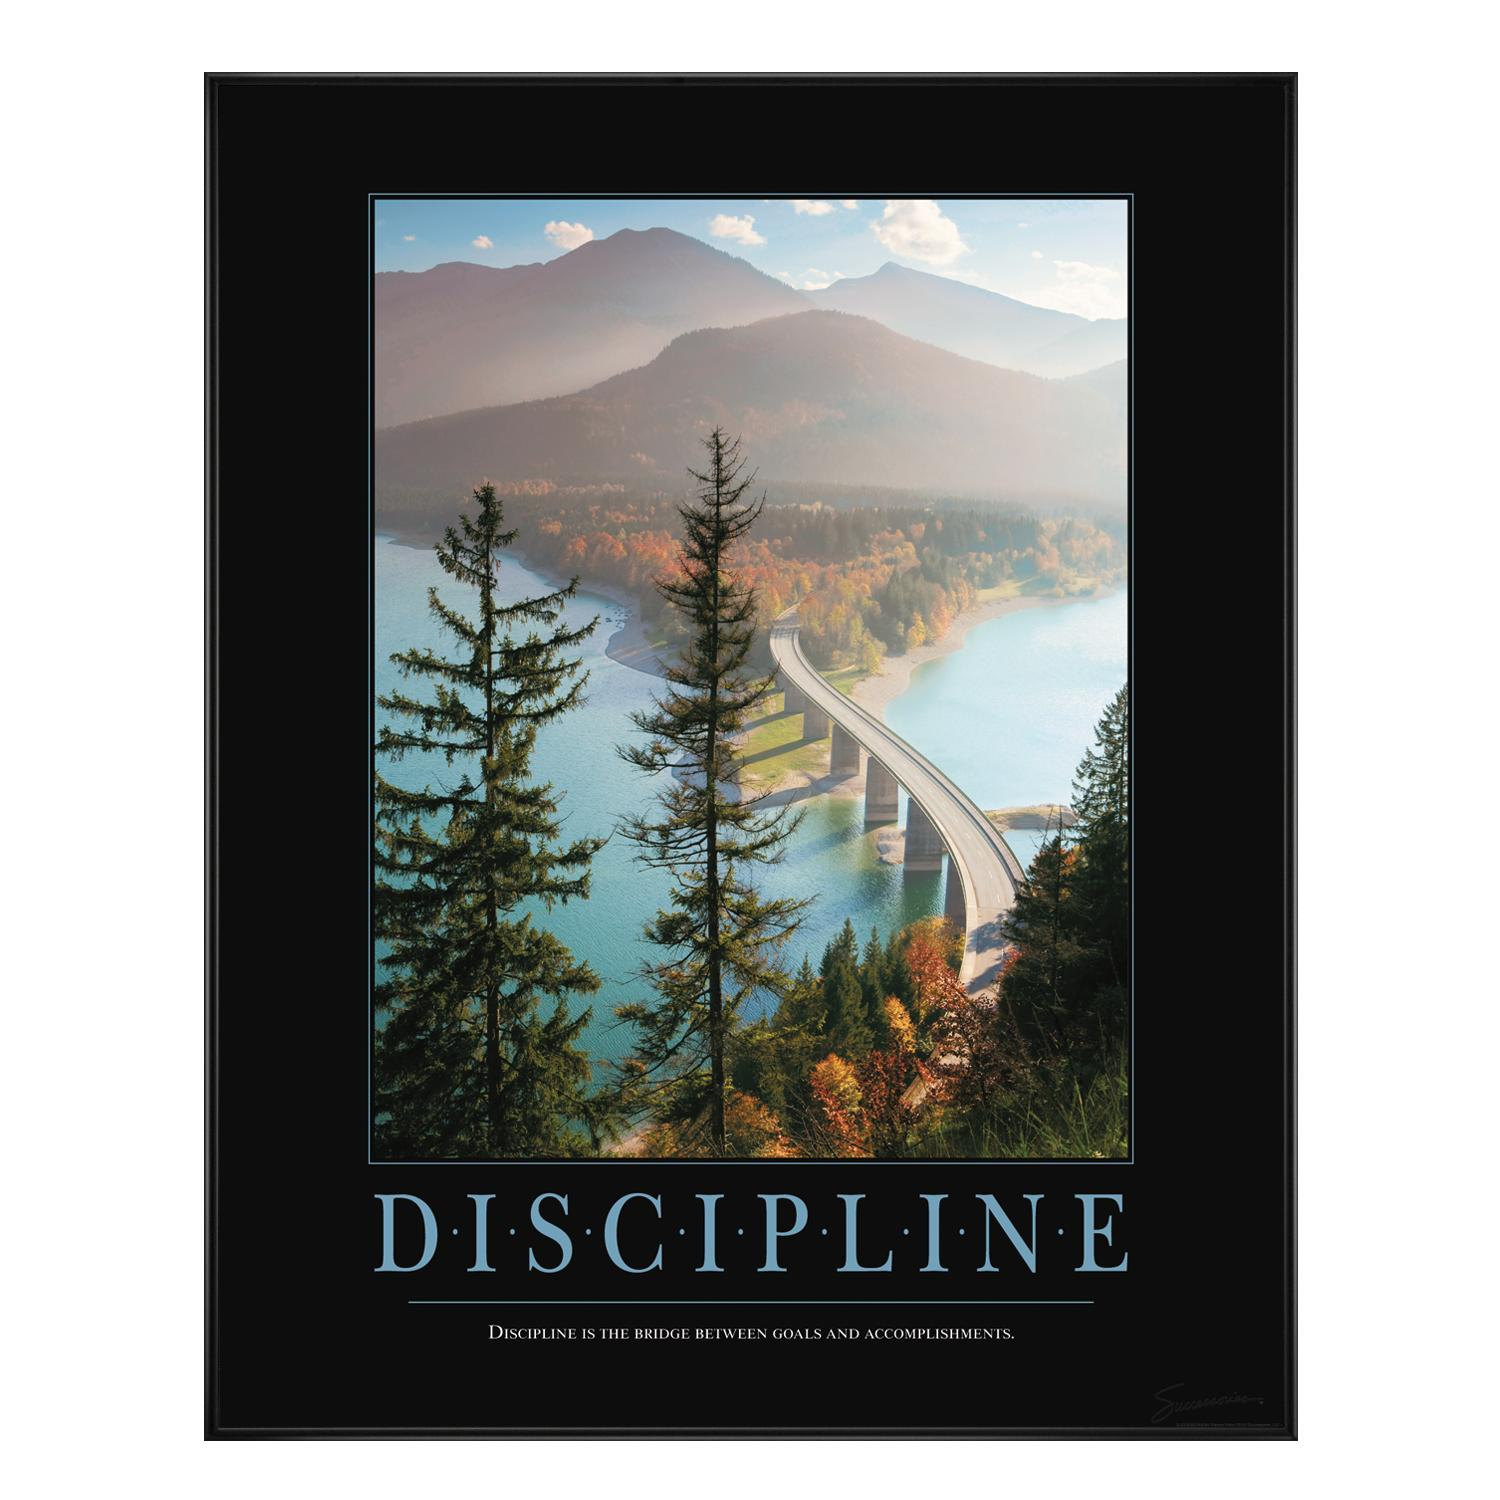 Motivational Inspirational Quotes: Quotes About Employee Discipline (23 Quotes